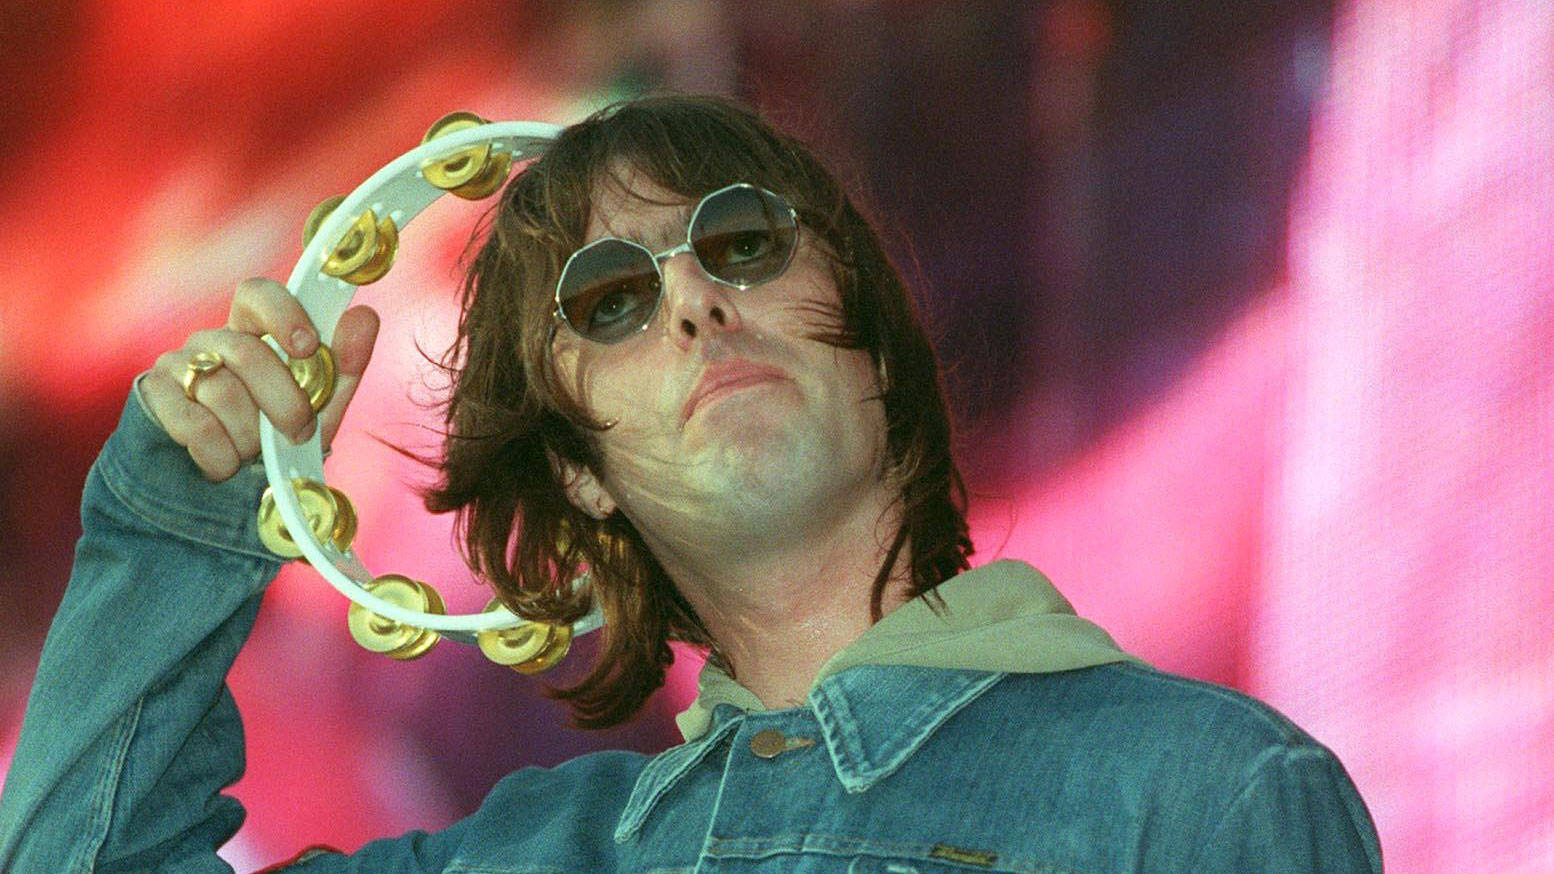 d74367e94811 Liam Gallagher stopped drinking on stage after 2000 Oasis Wembley gig